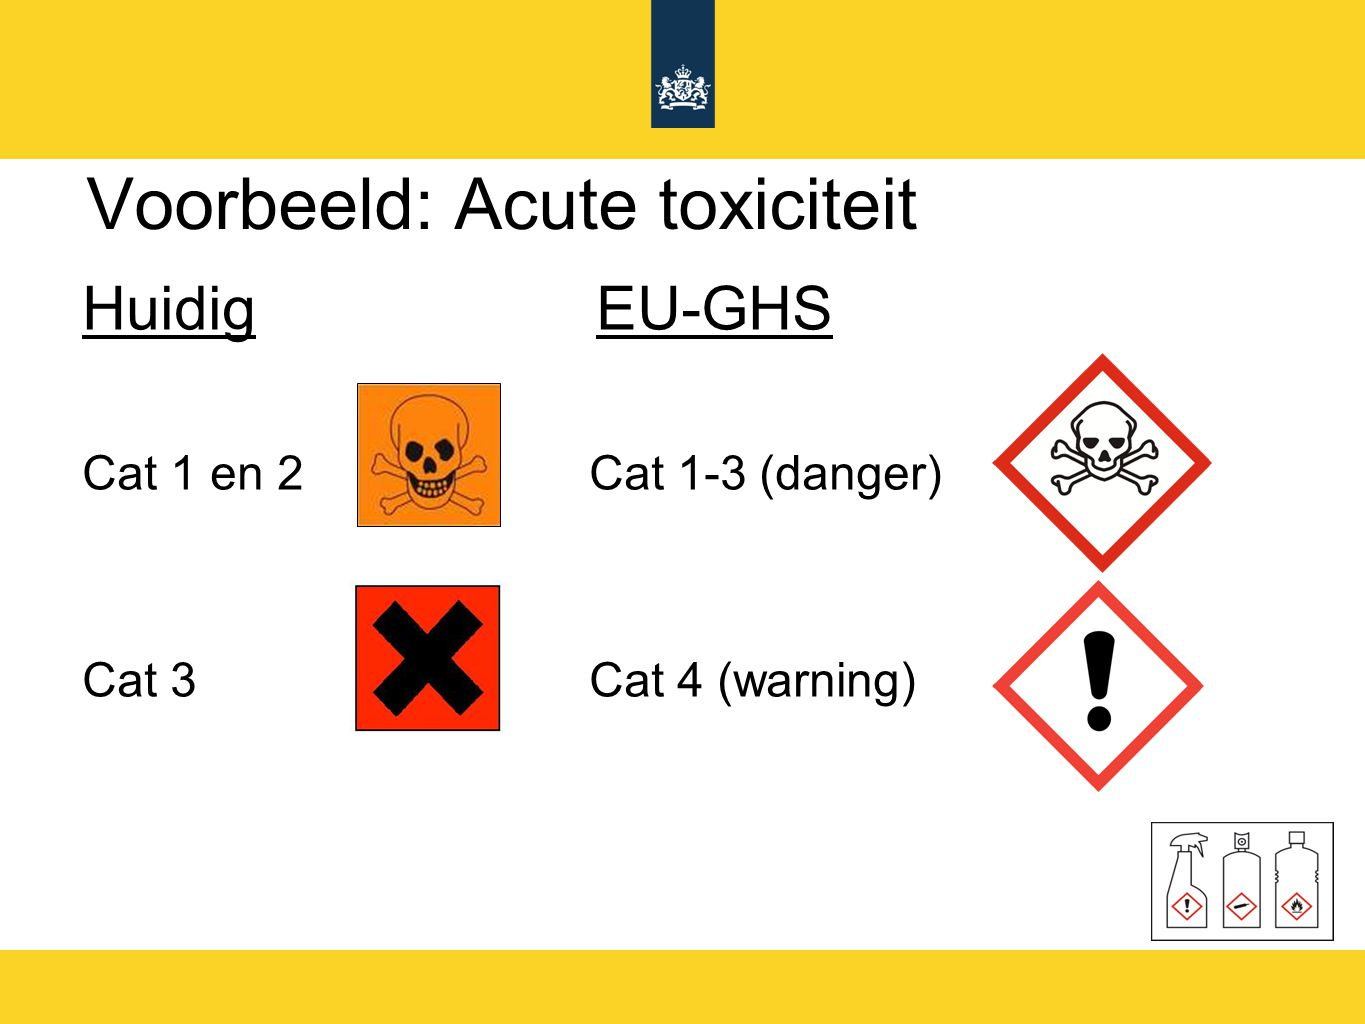 Voorbeeld: Acute toxiciteit Huidig EU-GHS Cat 1 en 2 Cat 1-3 (danger) Cat 3 Cat 4 (warning)